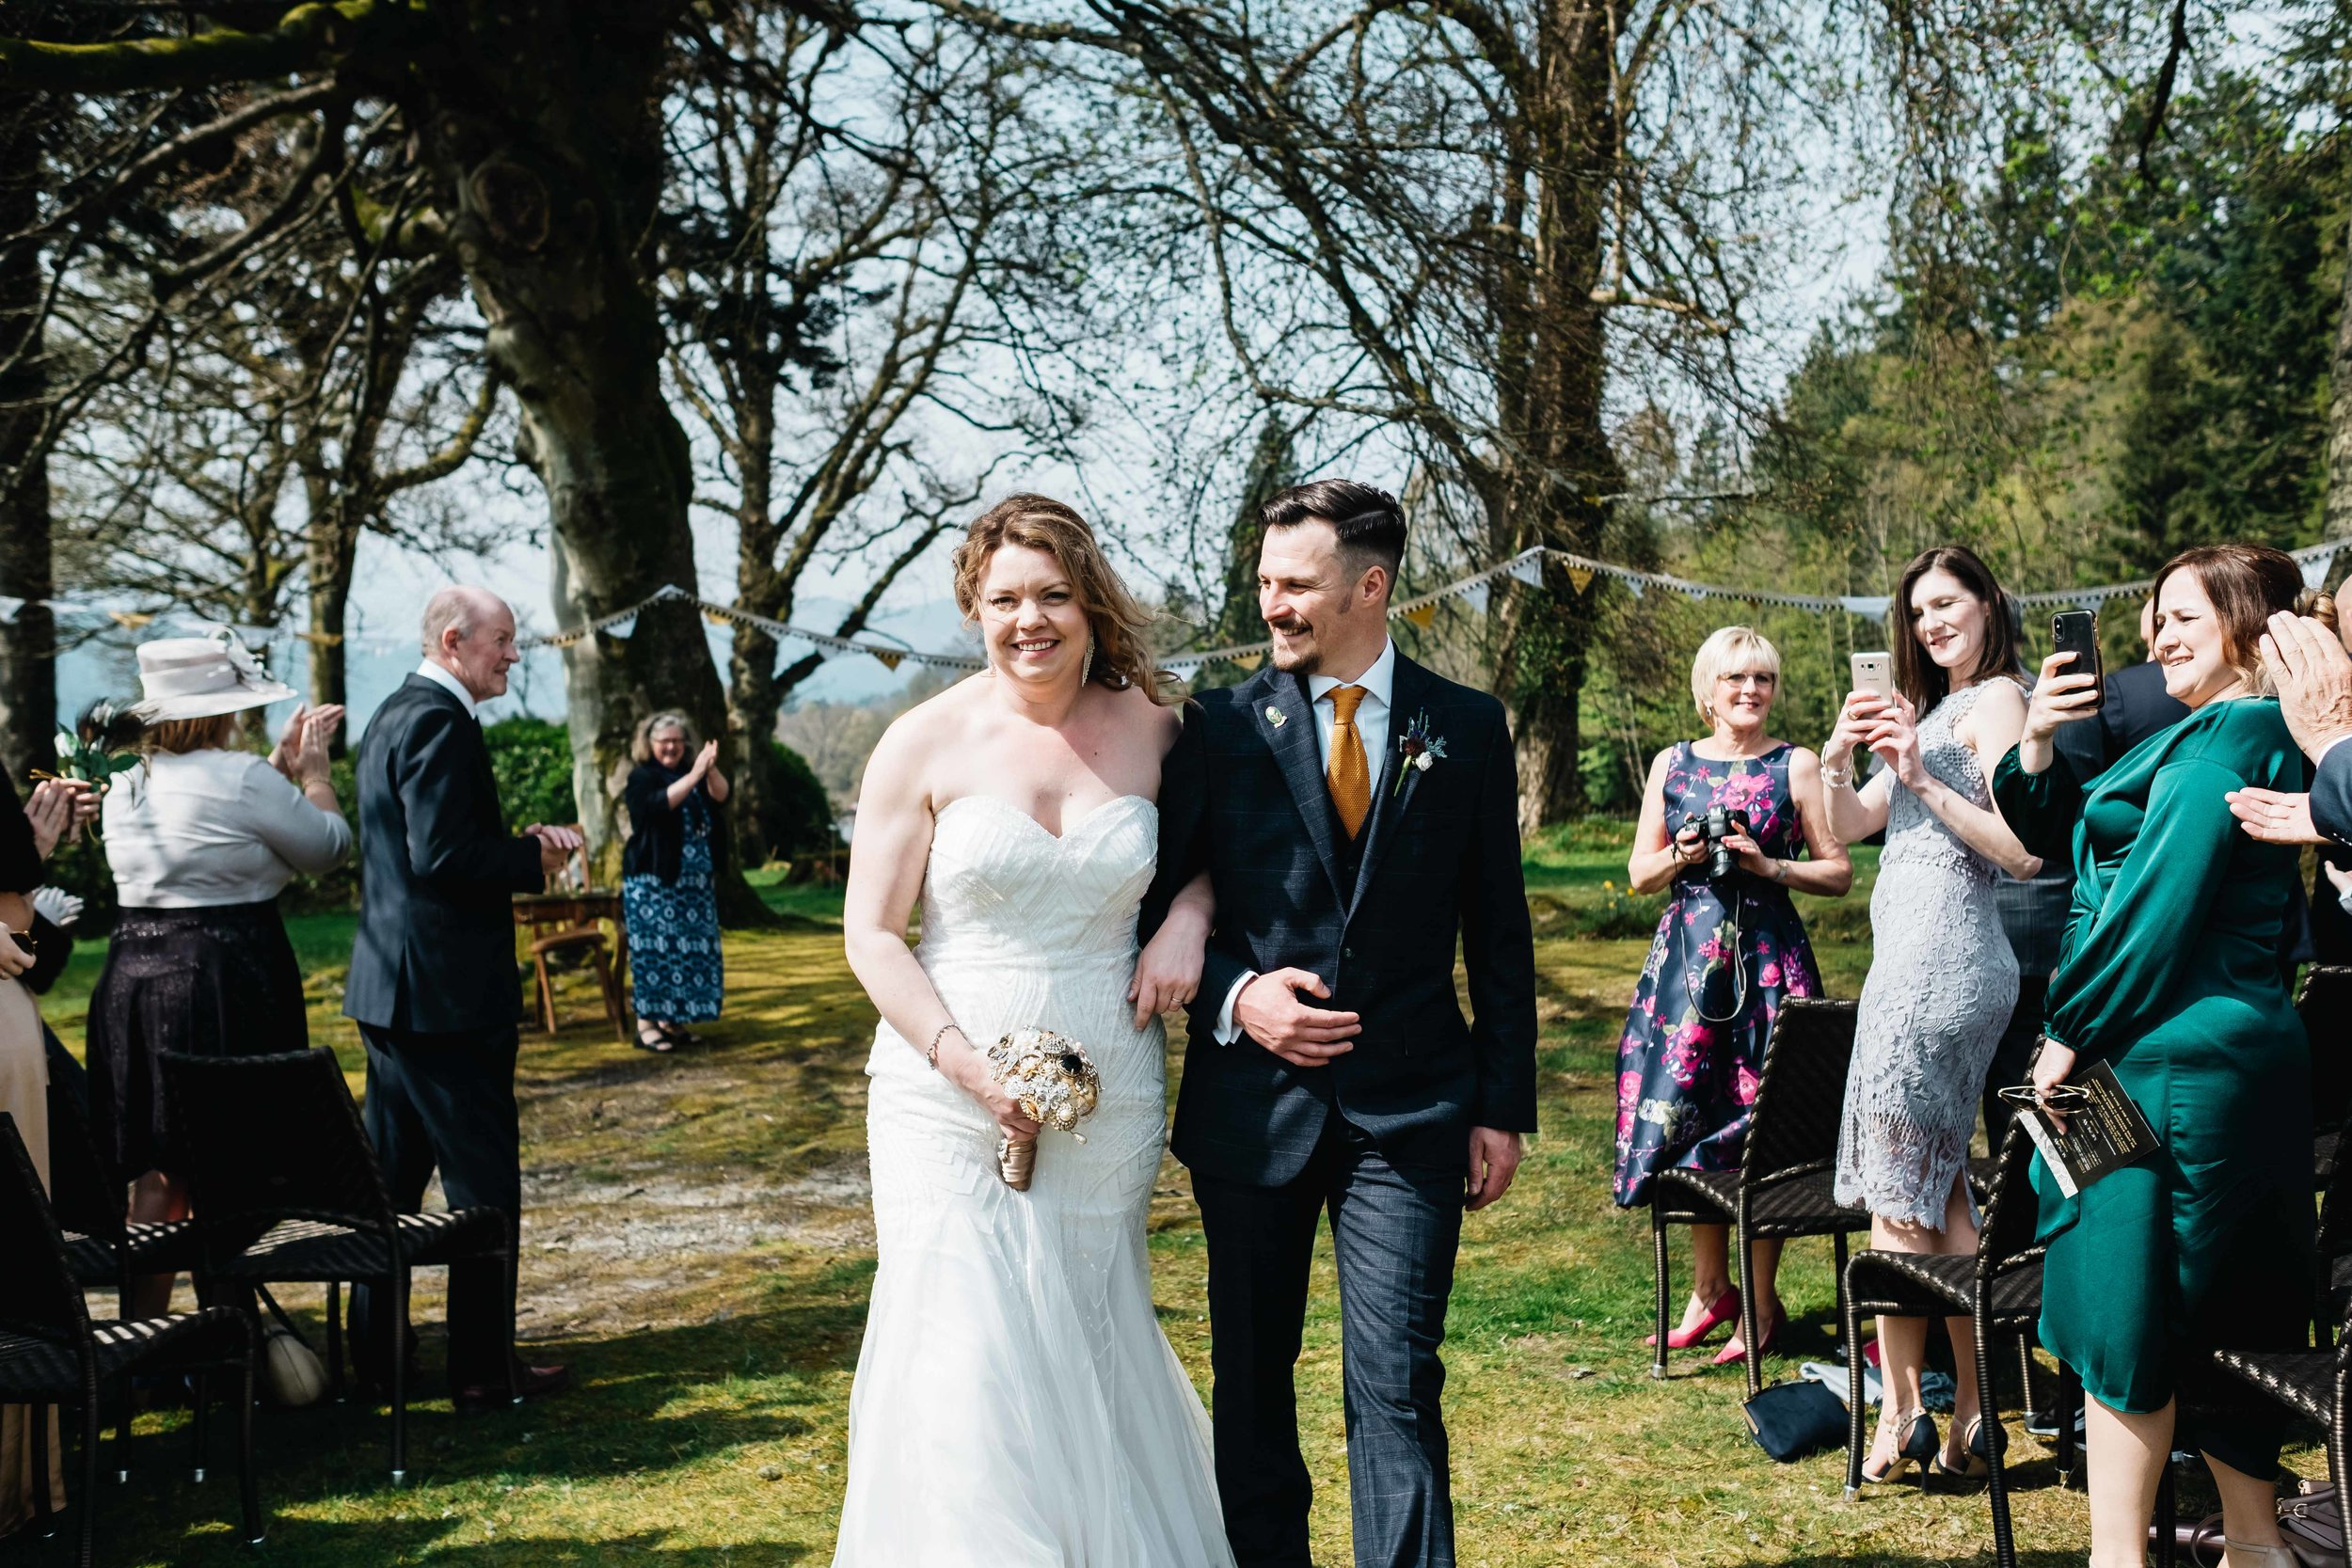 bride and groom smiling as they walk up the aisle of their outdoor wedding ceremony